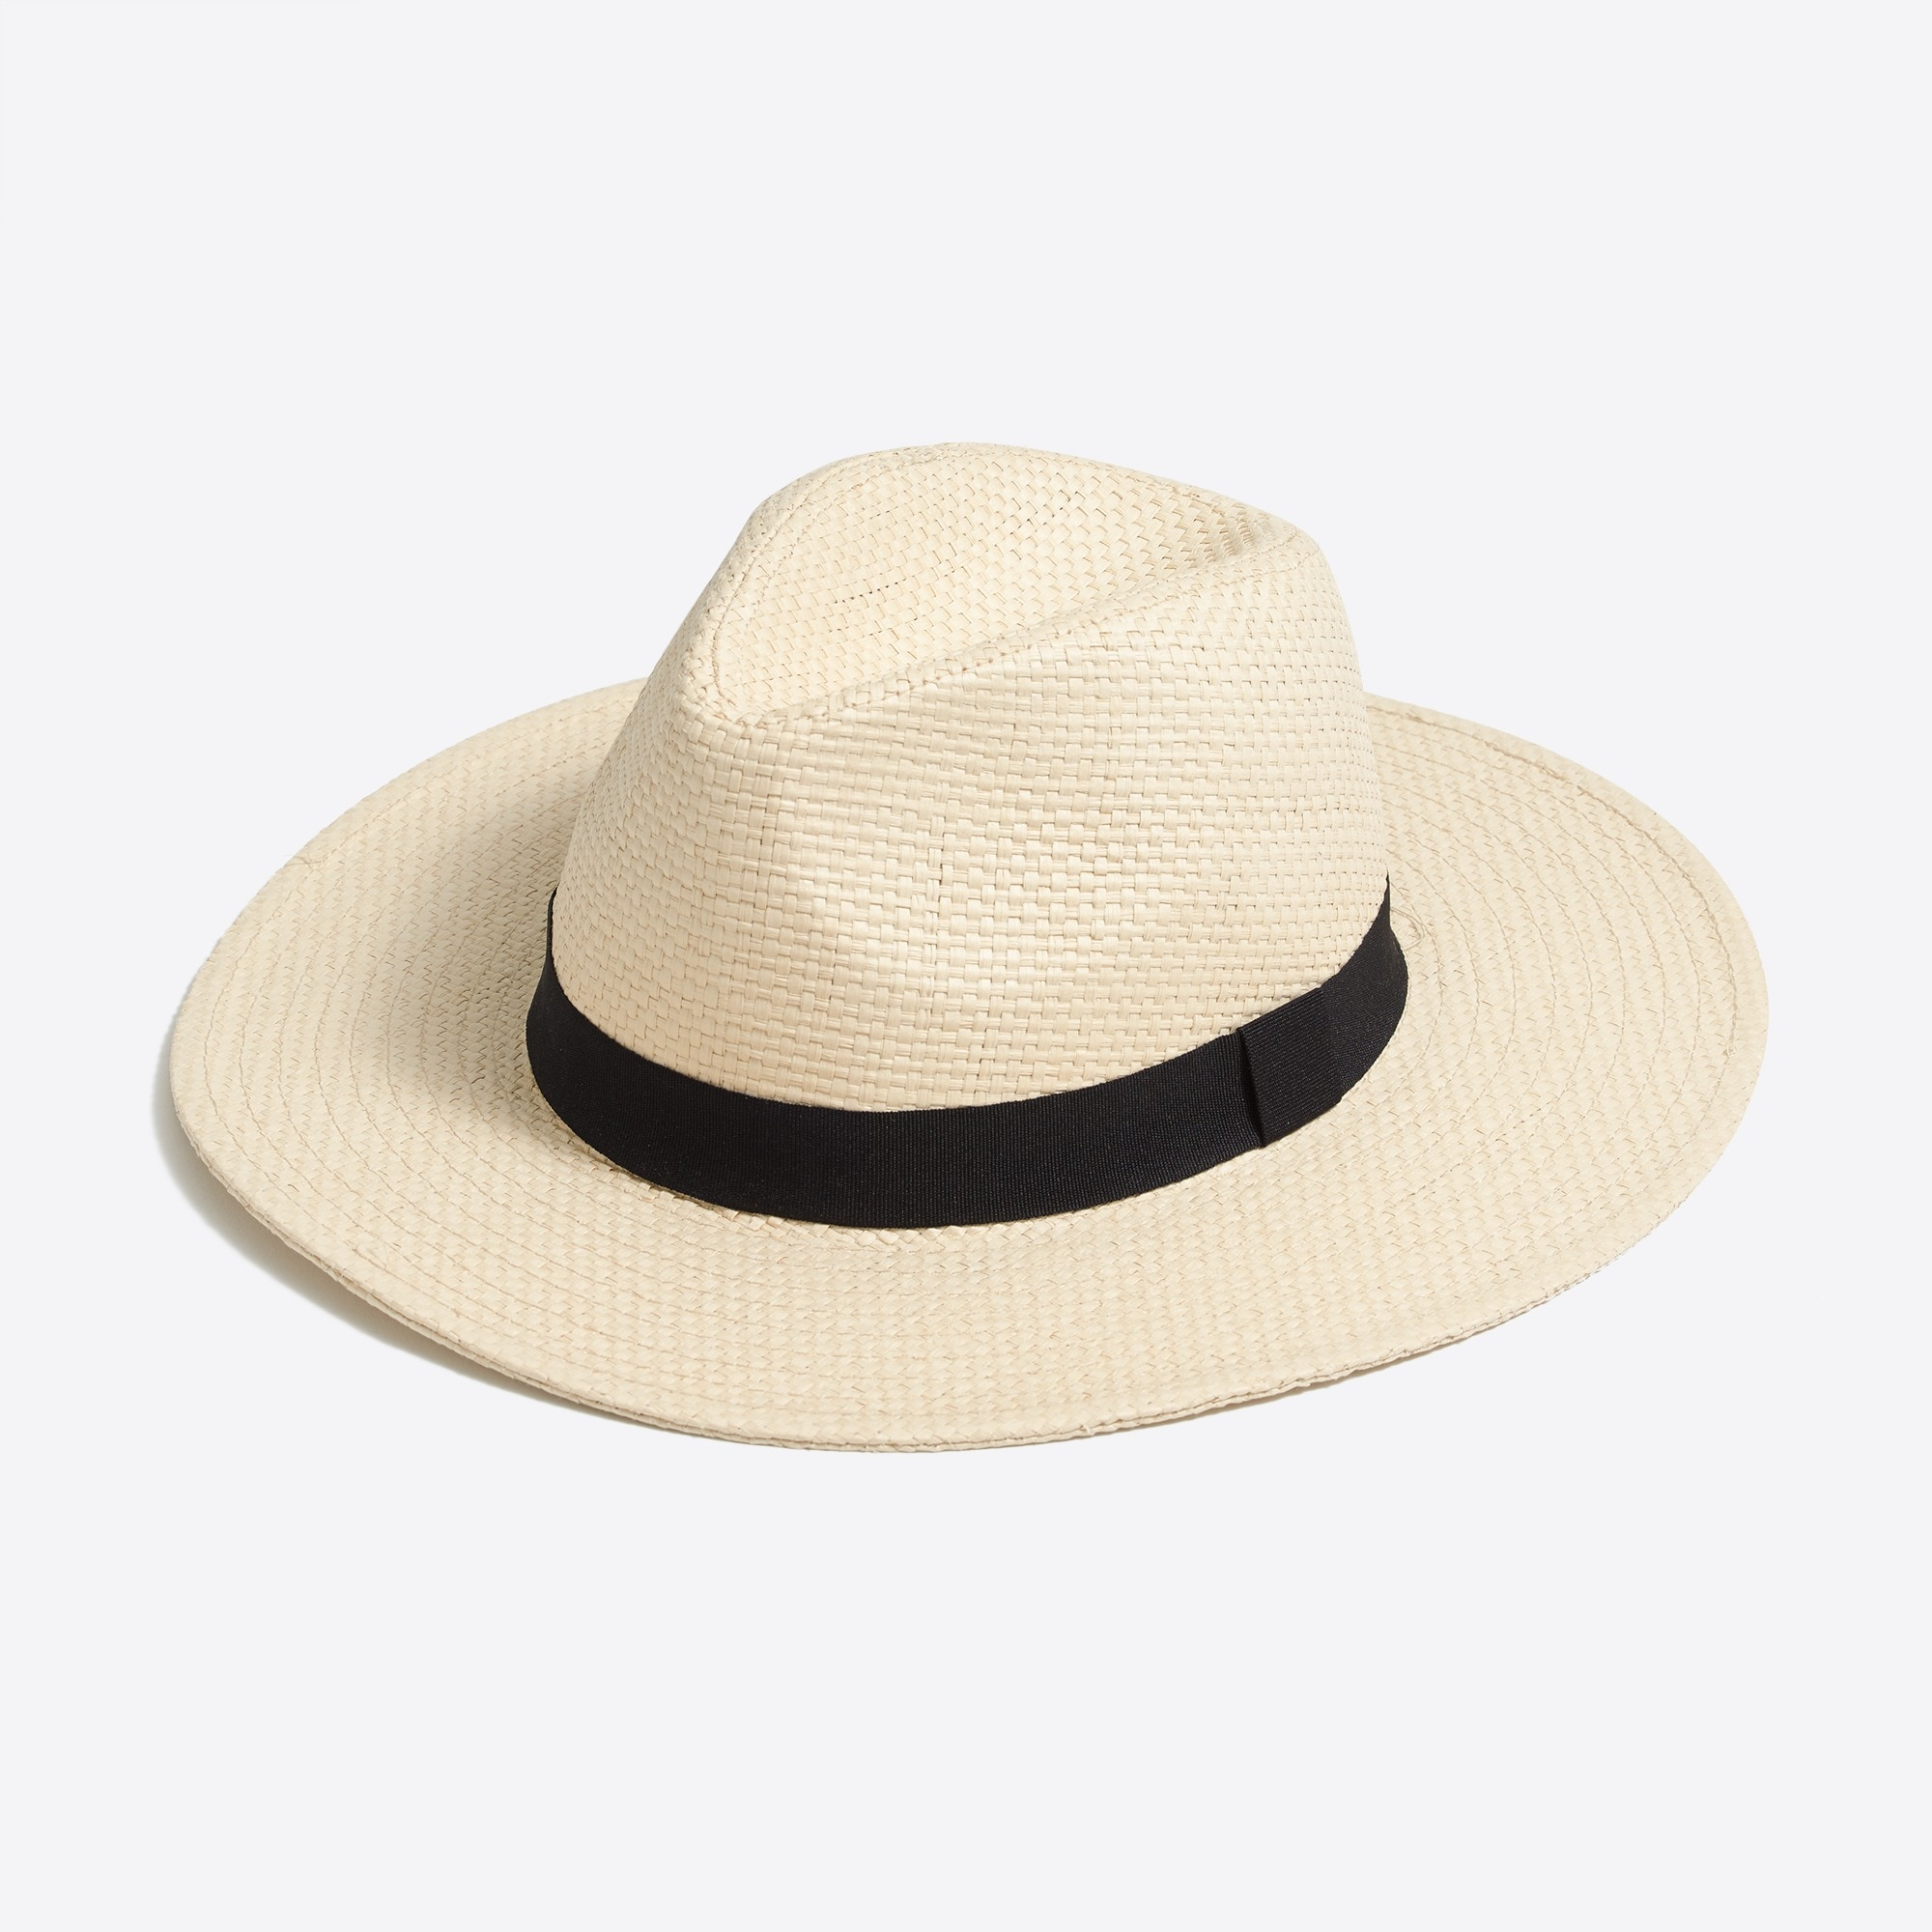 women's panama hat - women's accessories